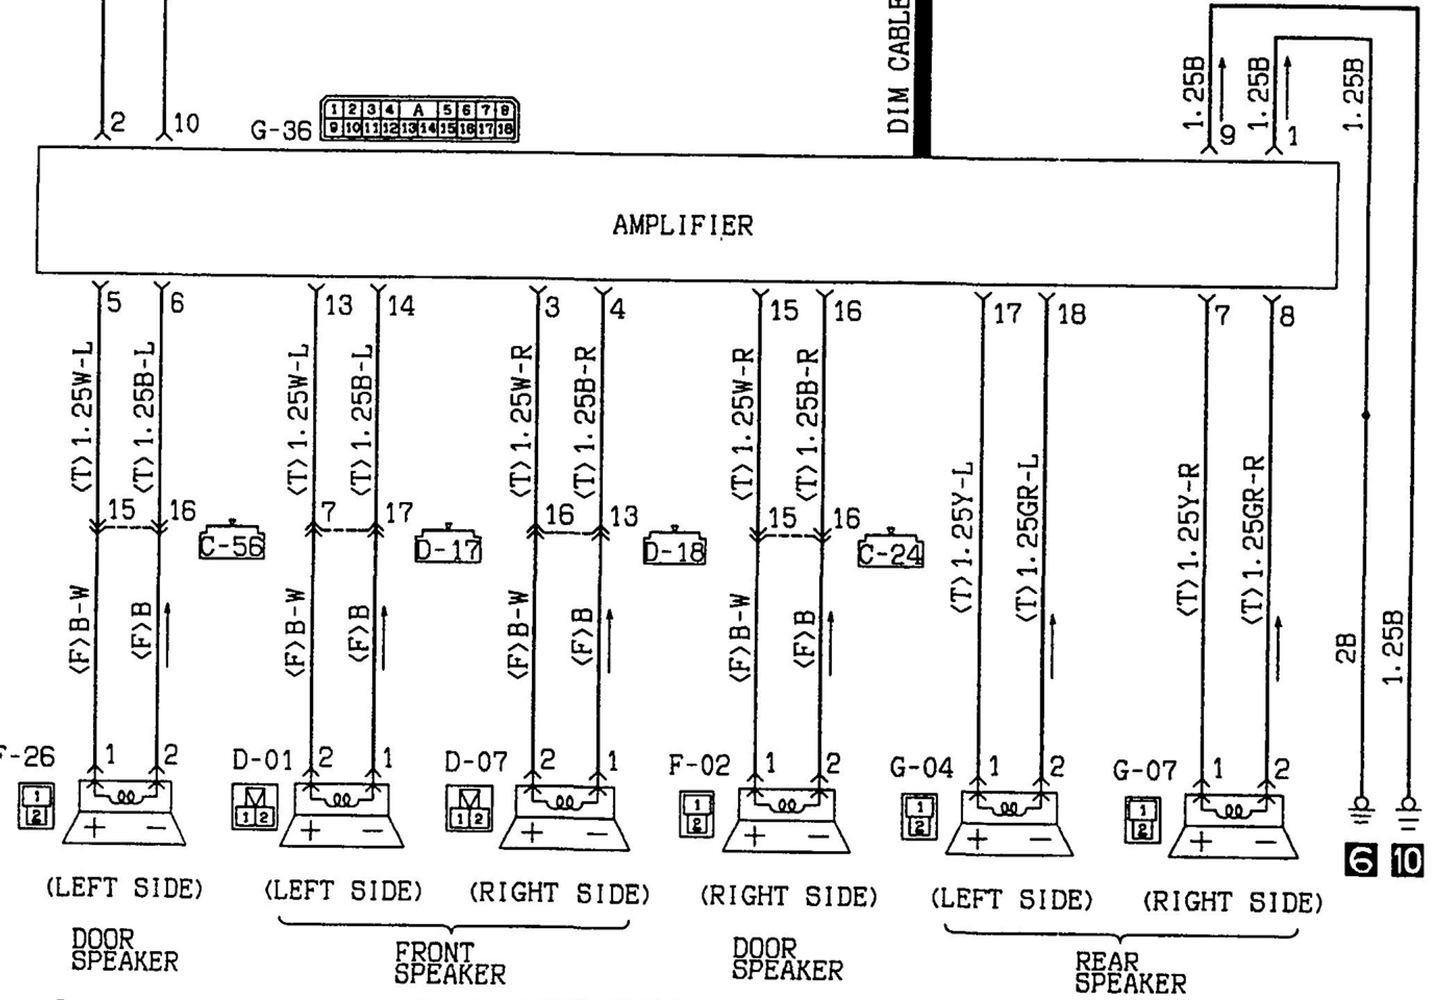 wiring diagram for mitsubishi diamante wiring library diagram h7 rh 19 rgth tpk diningroom de 2003 mitsubishi diamante wiring diagram 1999 mitsubishi diamante radio wiring diagram